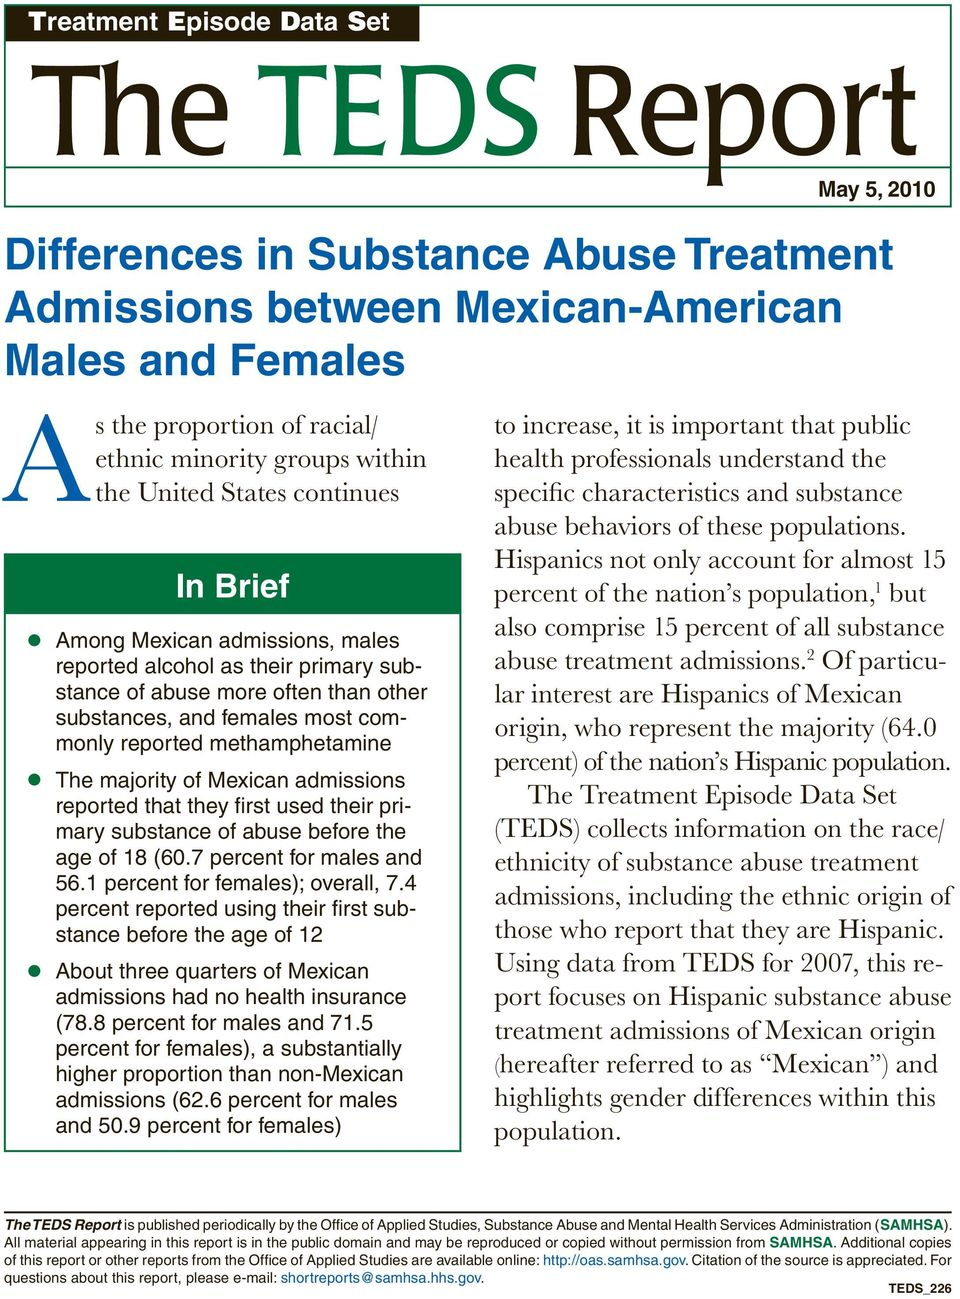 methamphetamine The majority of Mexican admissions reported that they first used their primary substance of abuse before the age of 18 (6.7 percent for males and 56.1 percent for females); overall, 7.